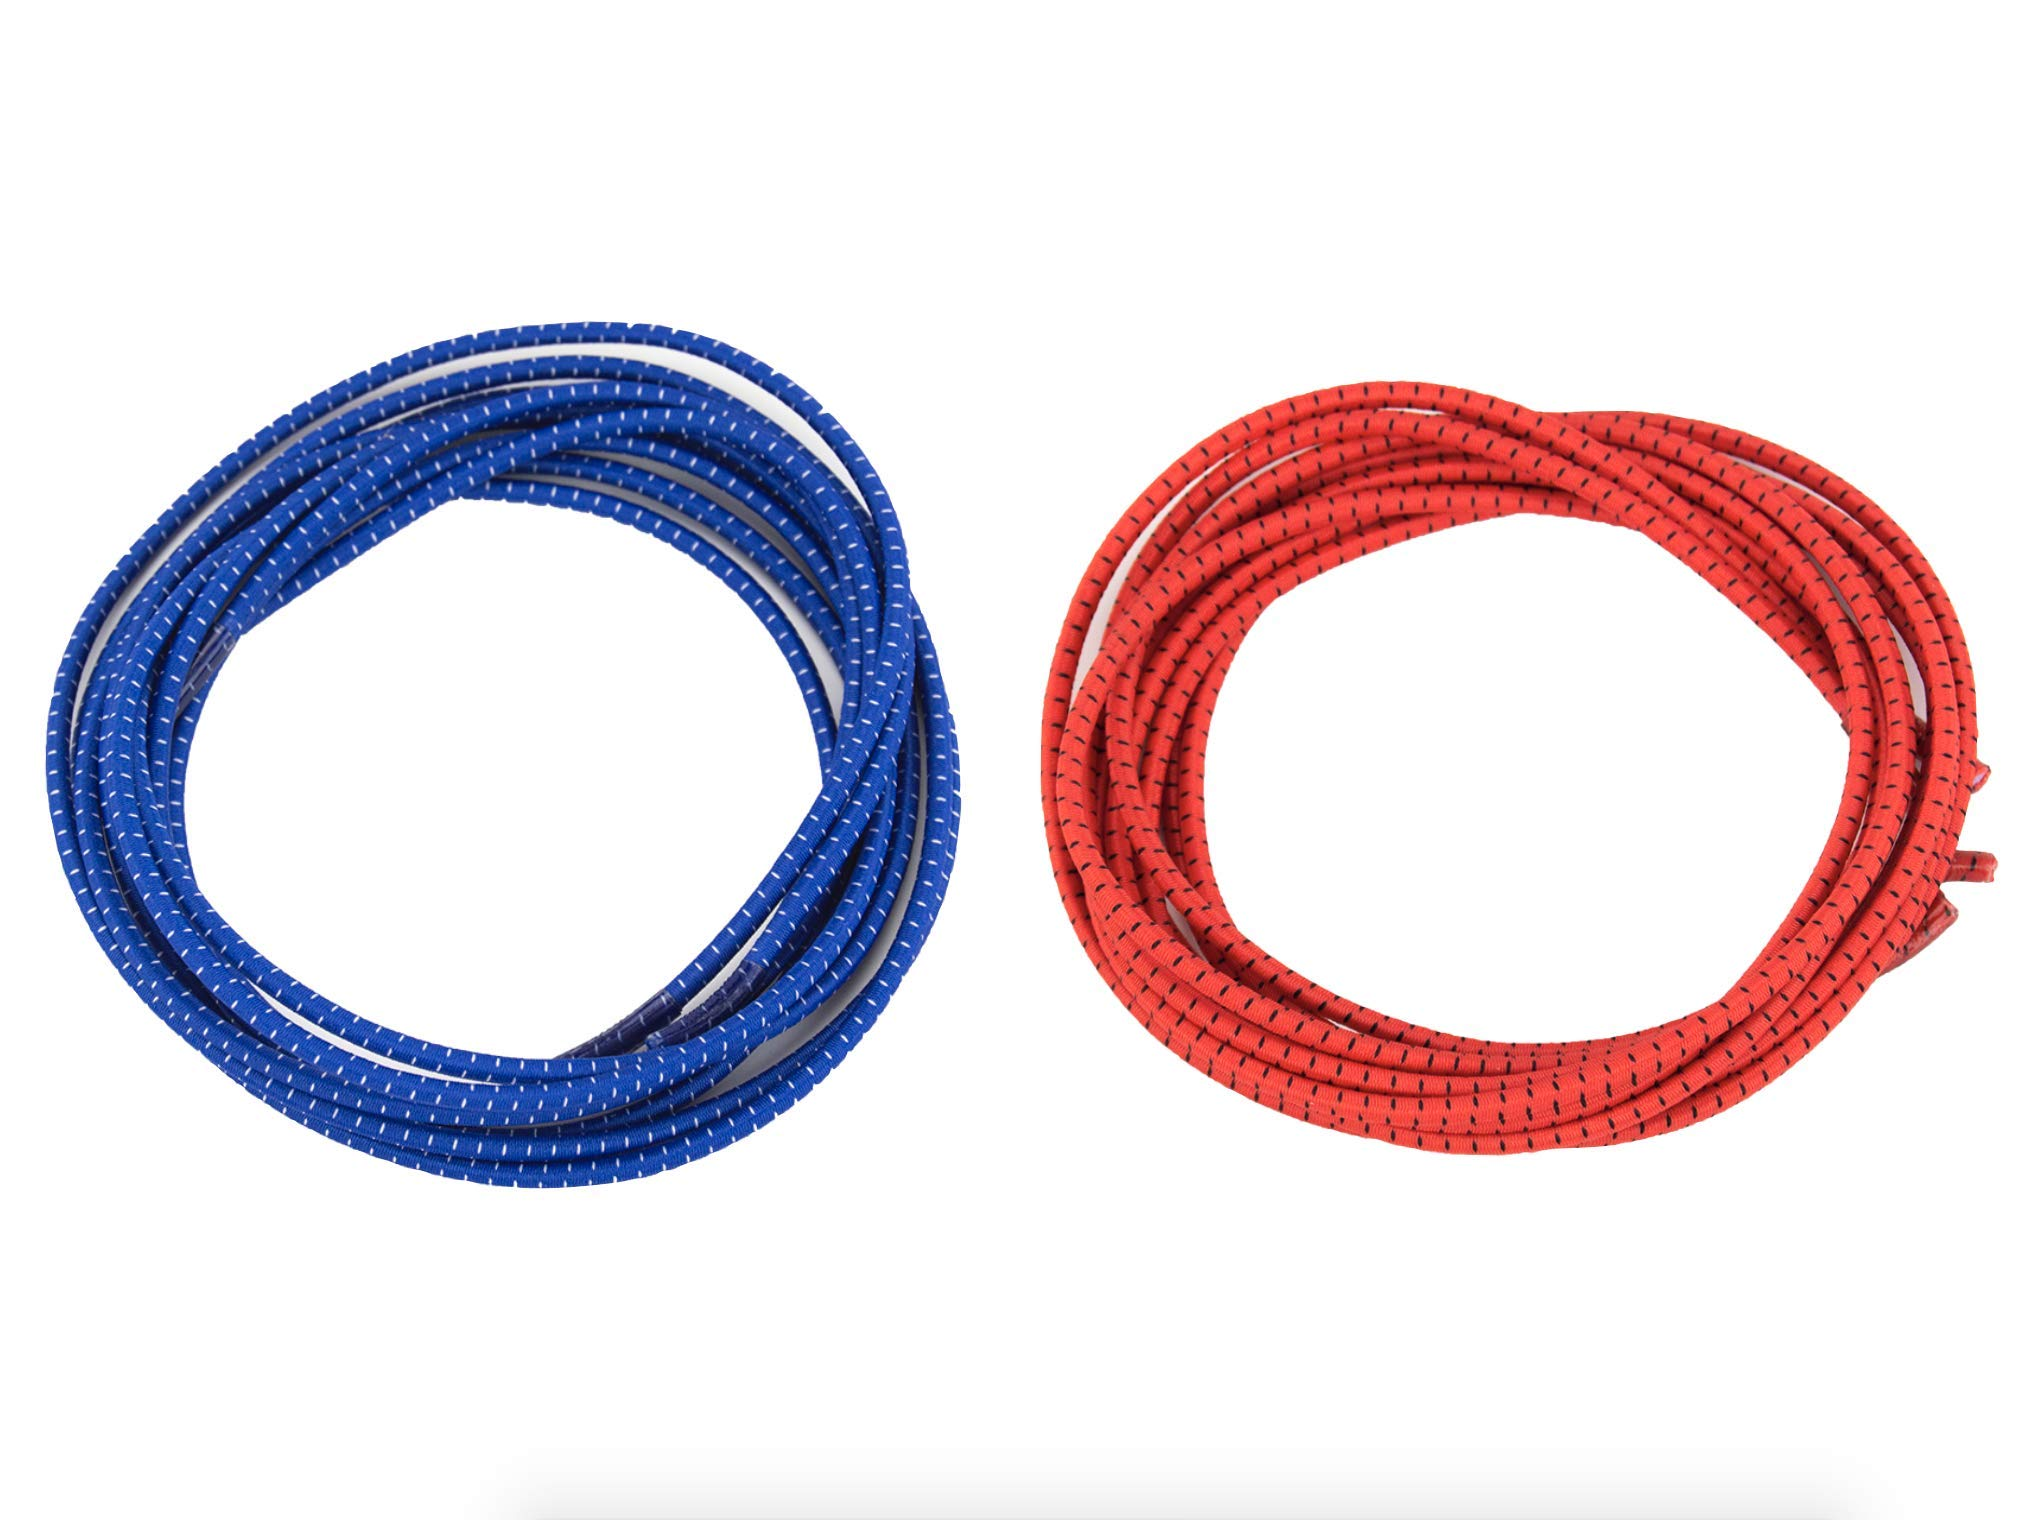 """Elastic No Tie Shoelaces for Adults and Children (2-Pack) (39"""" with End Covers, Red & Blue)"""